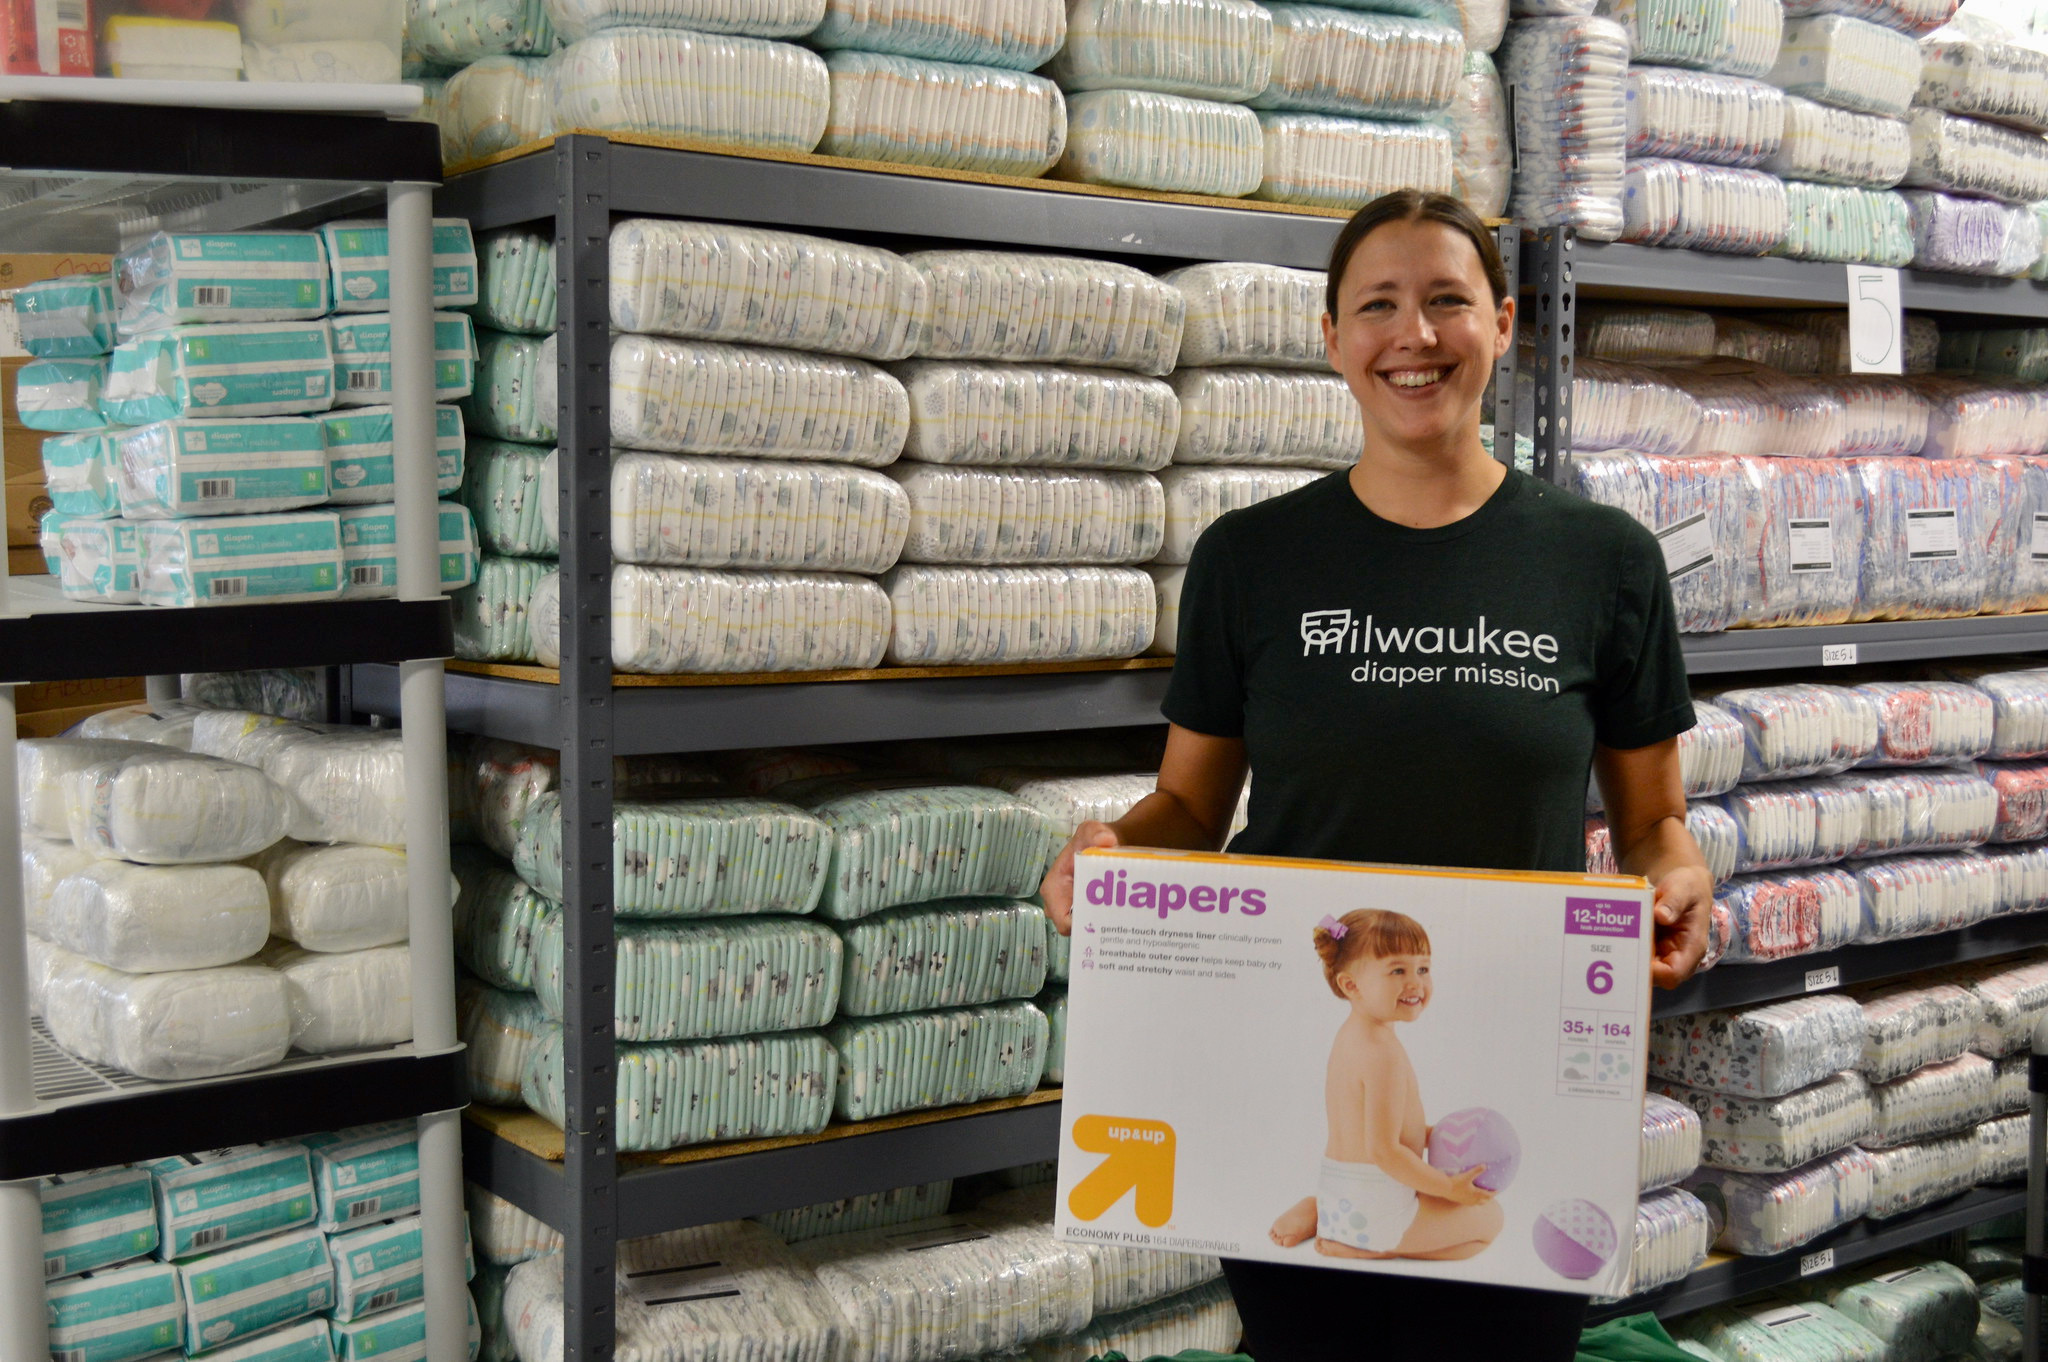 NNS Spotlight: 'Diapers, dollars and doers': How Milwaukee Diaper Mission is answering the community's needs